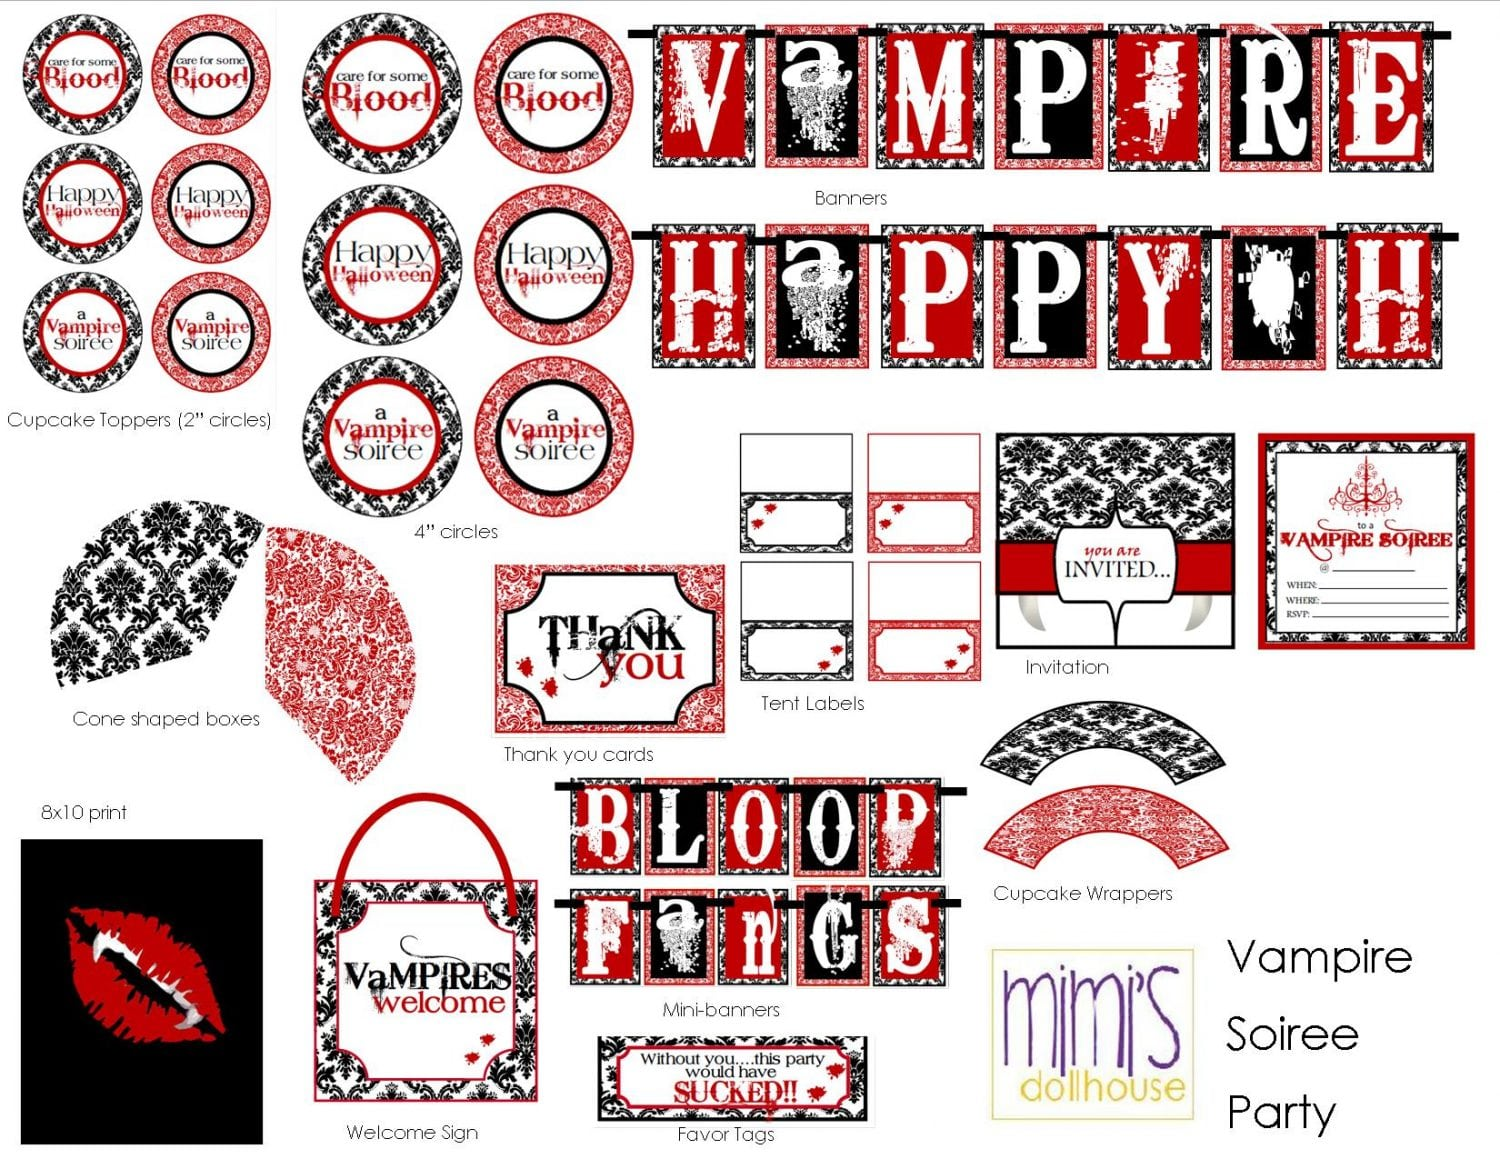 {NEW IN SHOP} Vampire Soiree